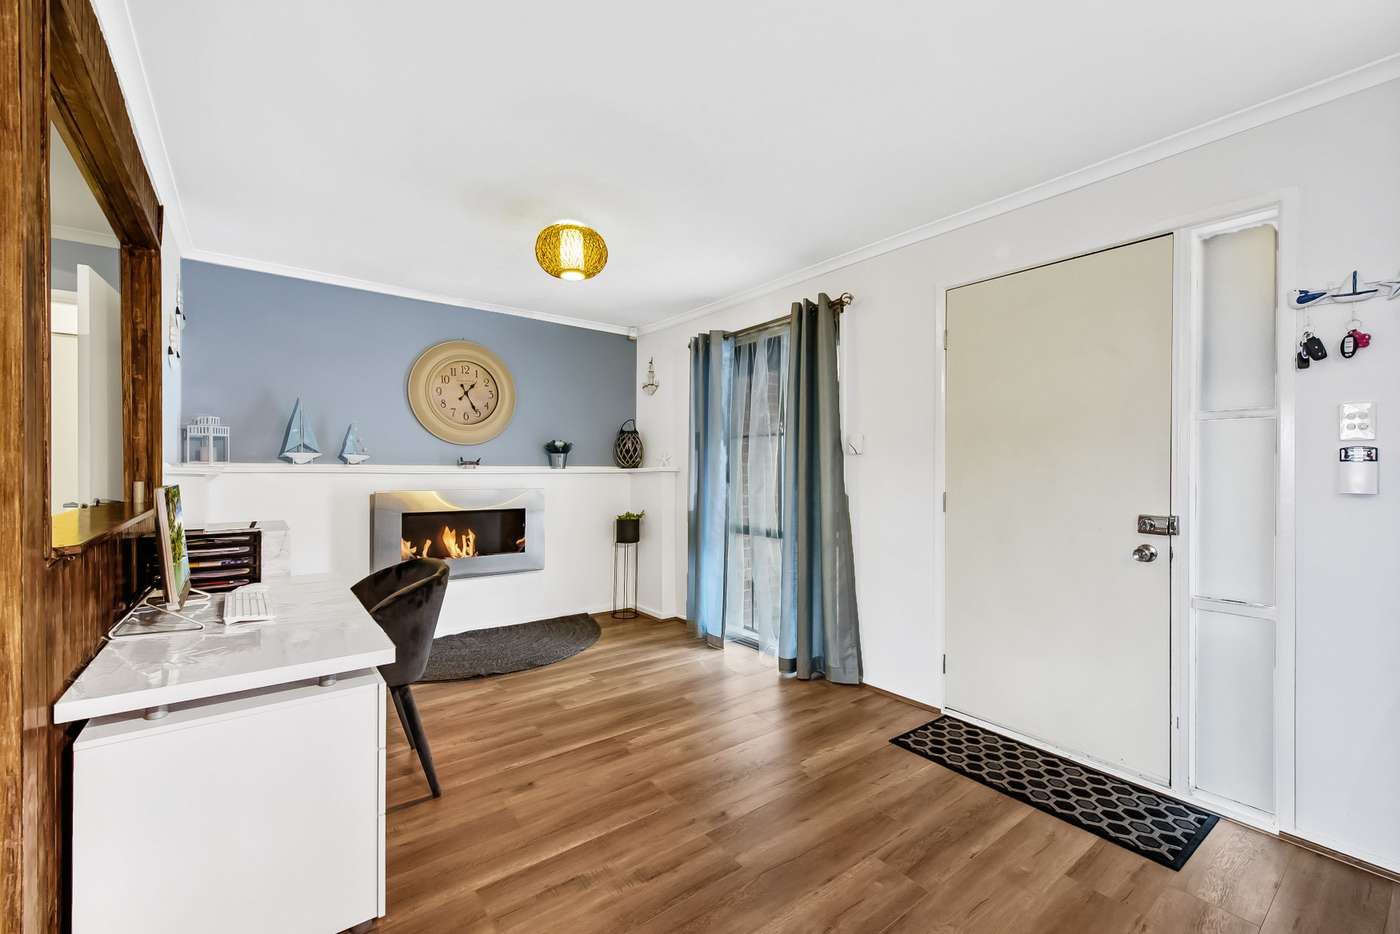 Seventh view of Homely house listing, 7 Sandstone Court, Delahey VIC 3037